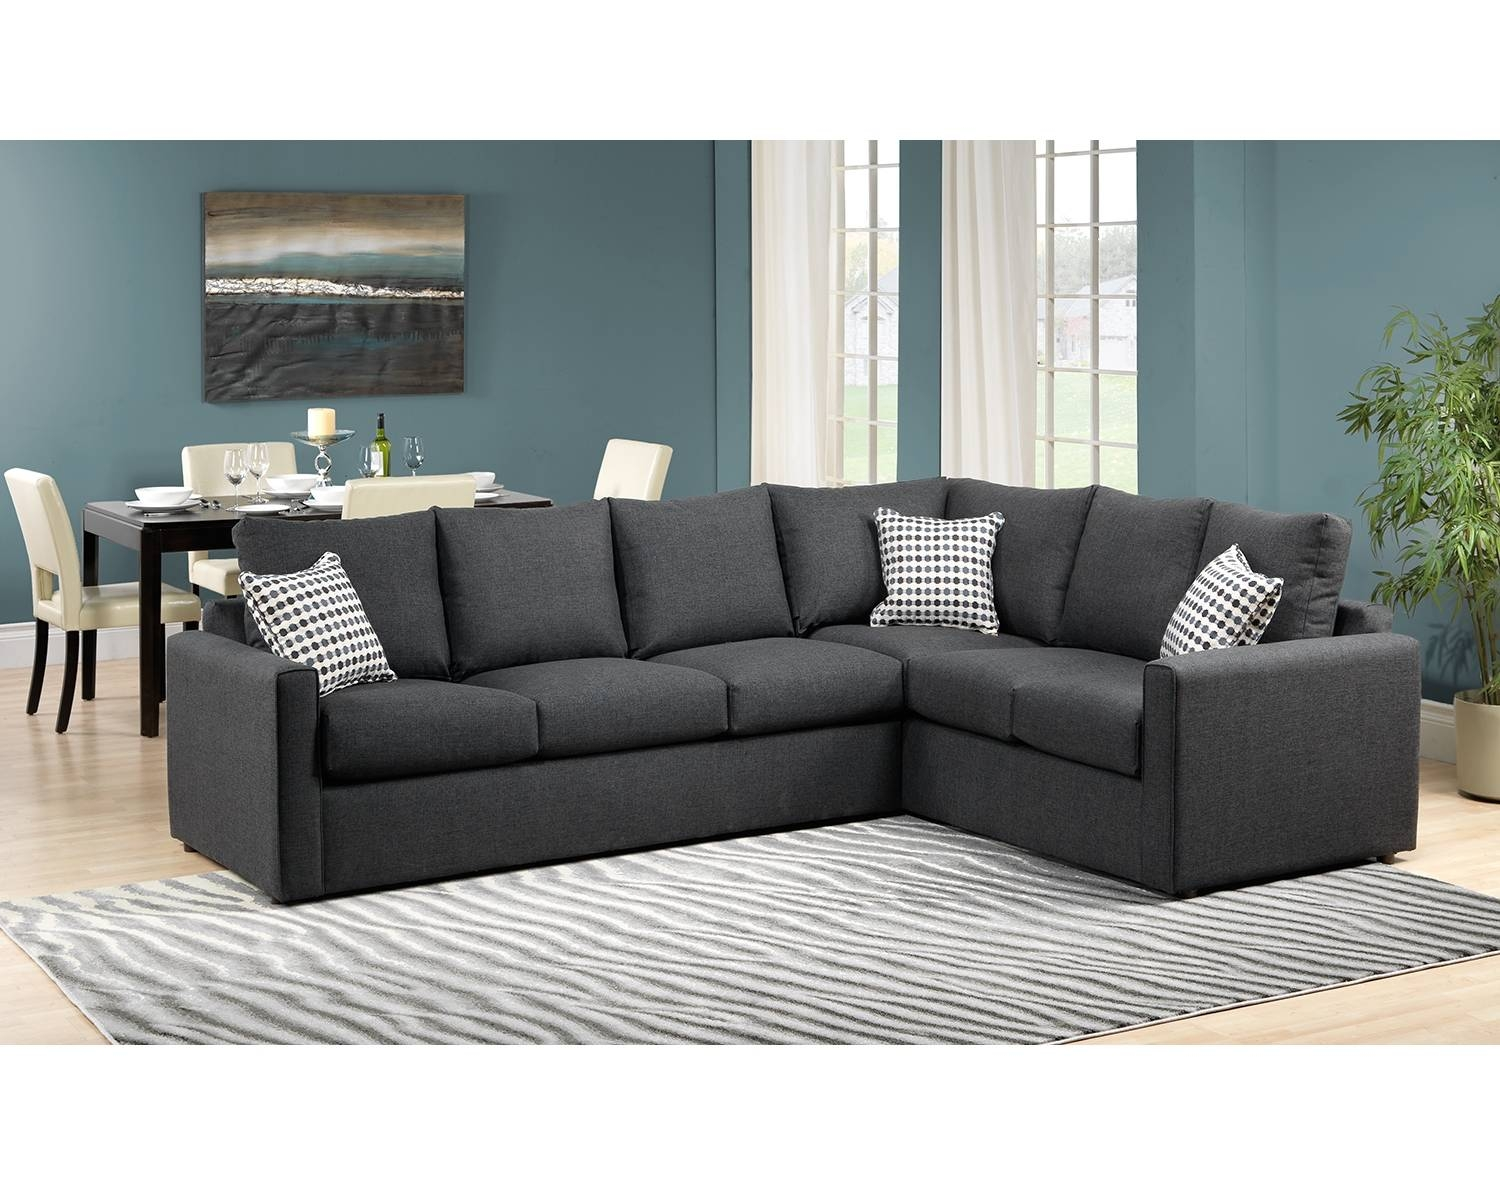 Athina 2-Piece Left-Facing Queen Sofa Bed Sectional - Charcoal pertaining to Sofa Beds Queen (Image 1 of 30)